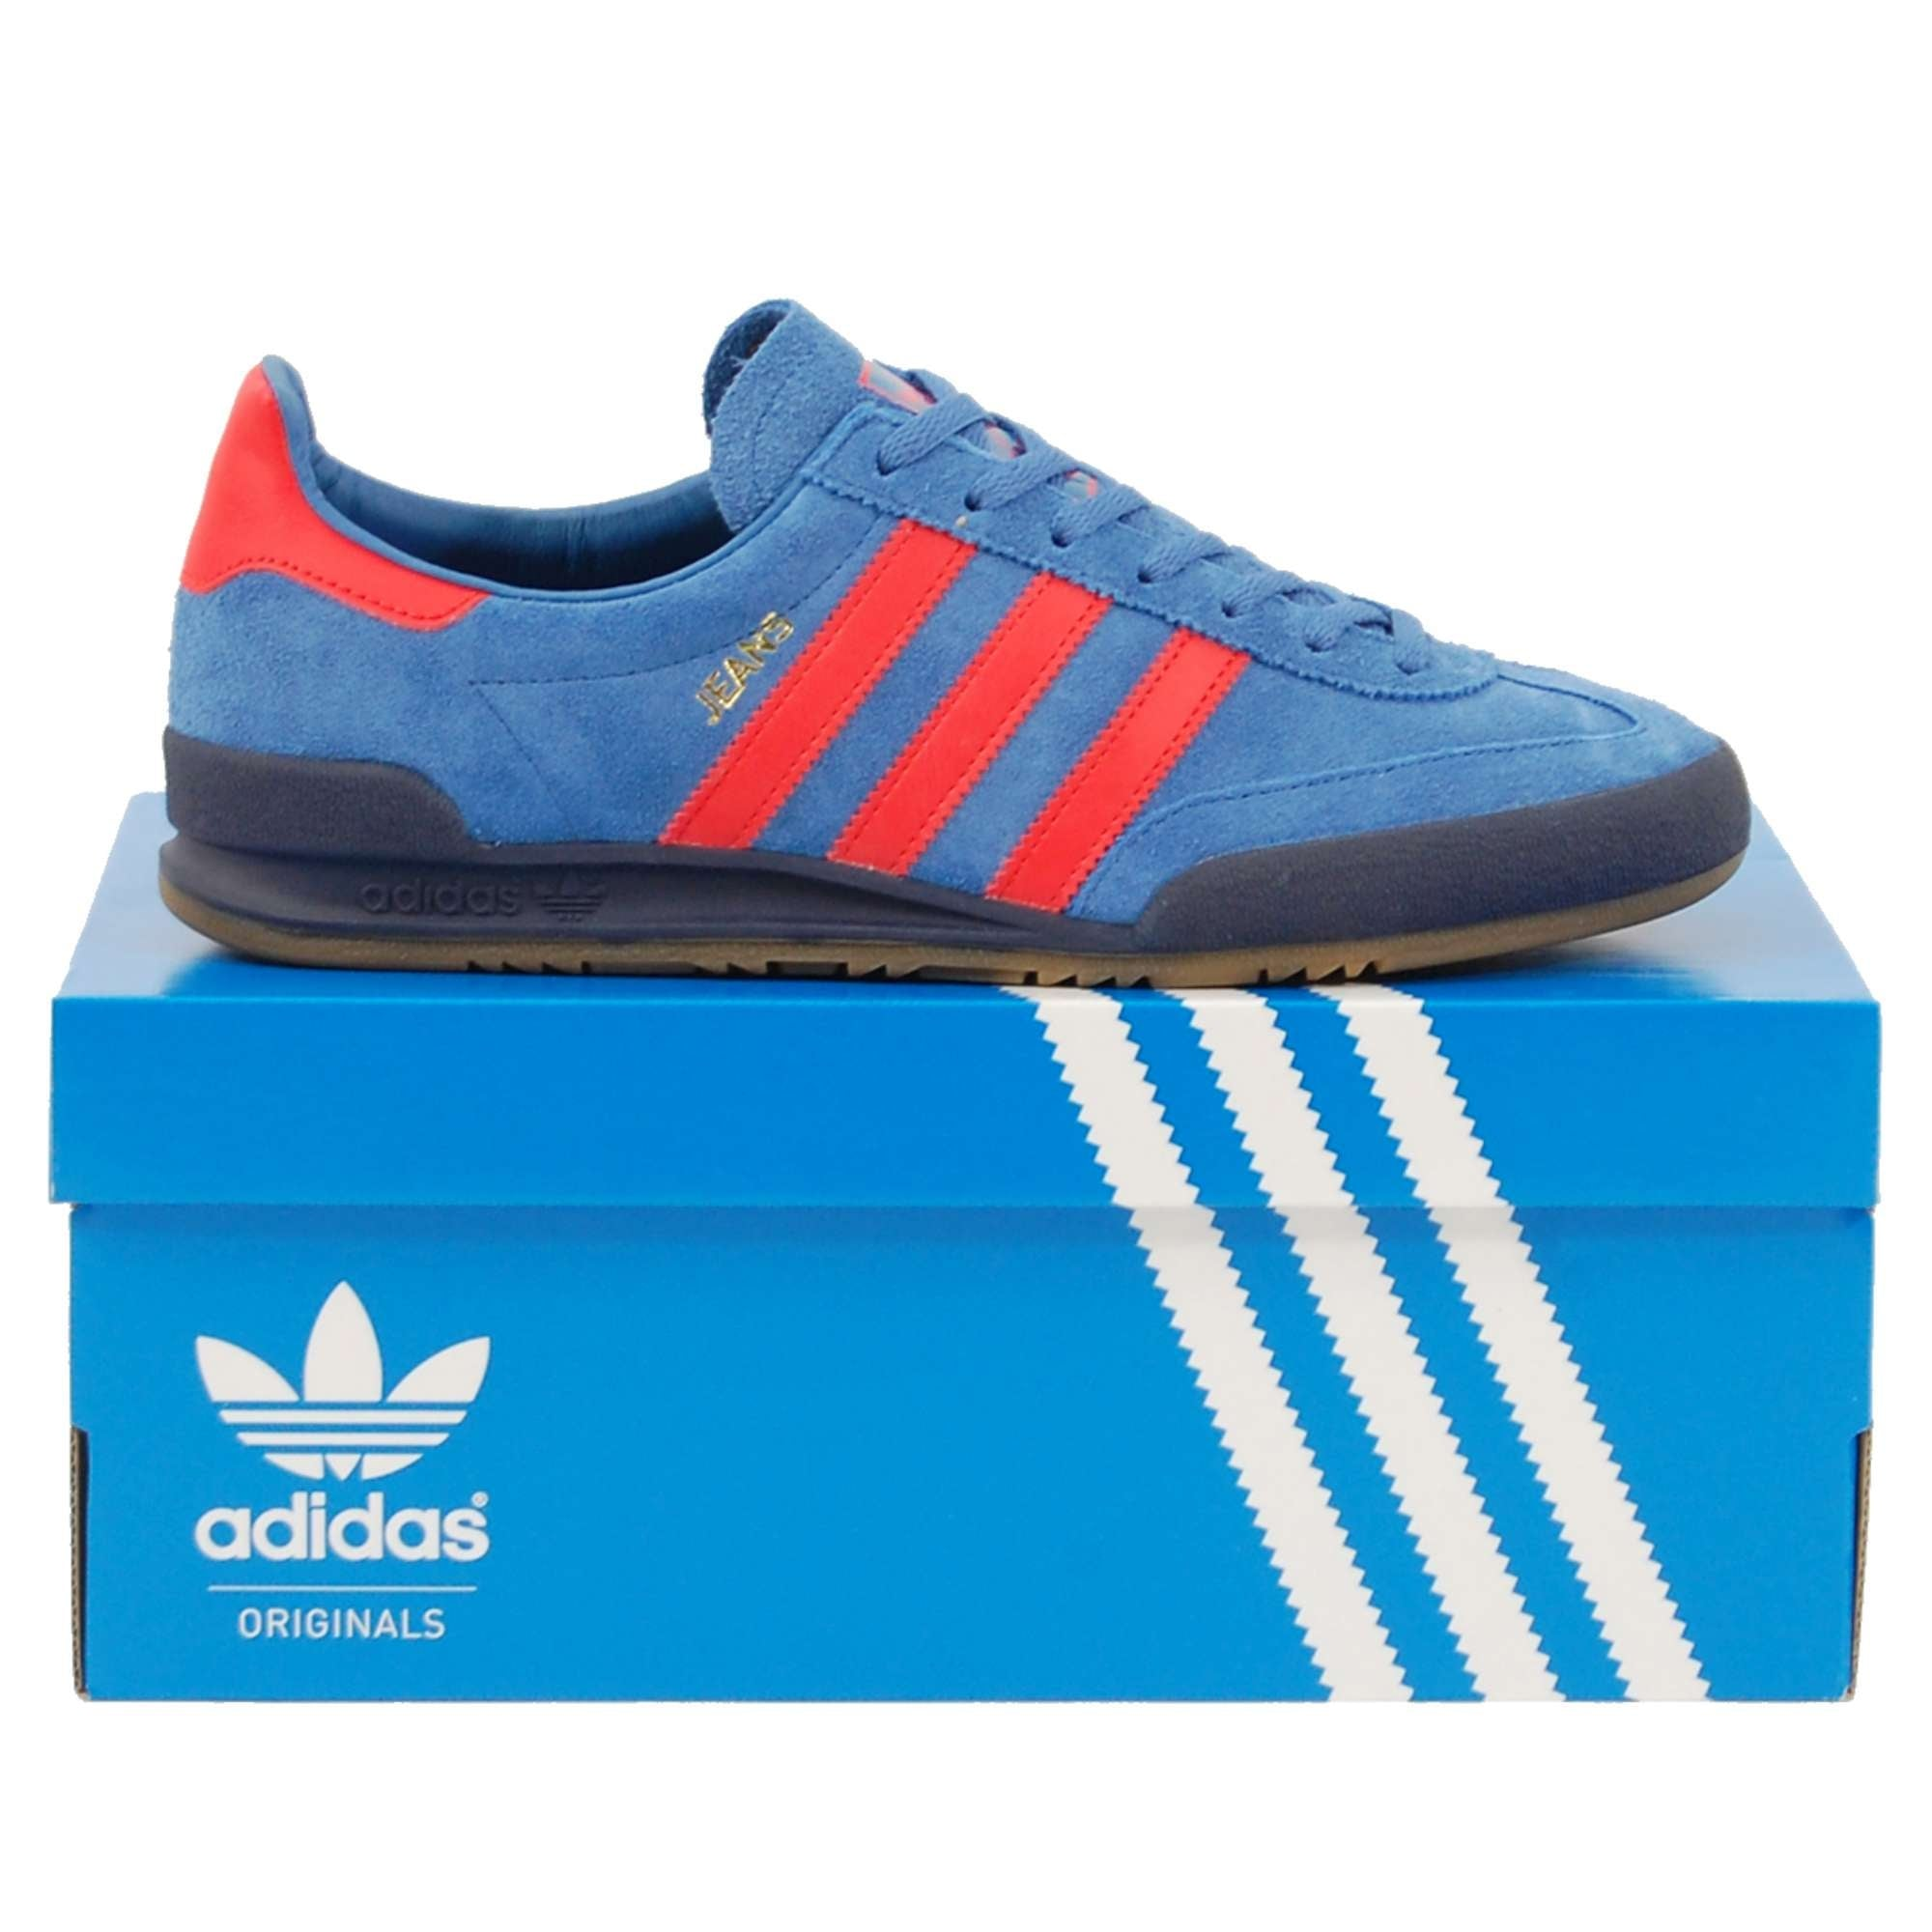 adidas jeans trace royal red